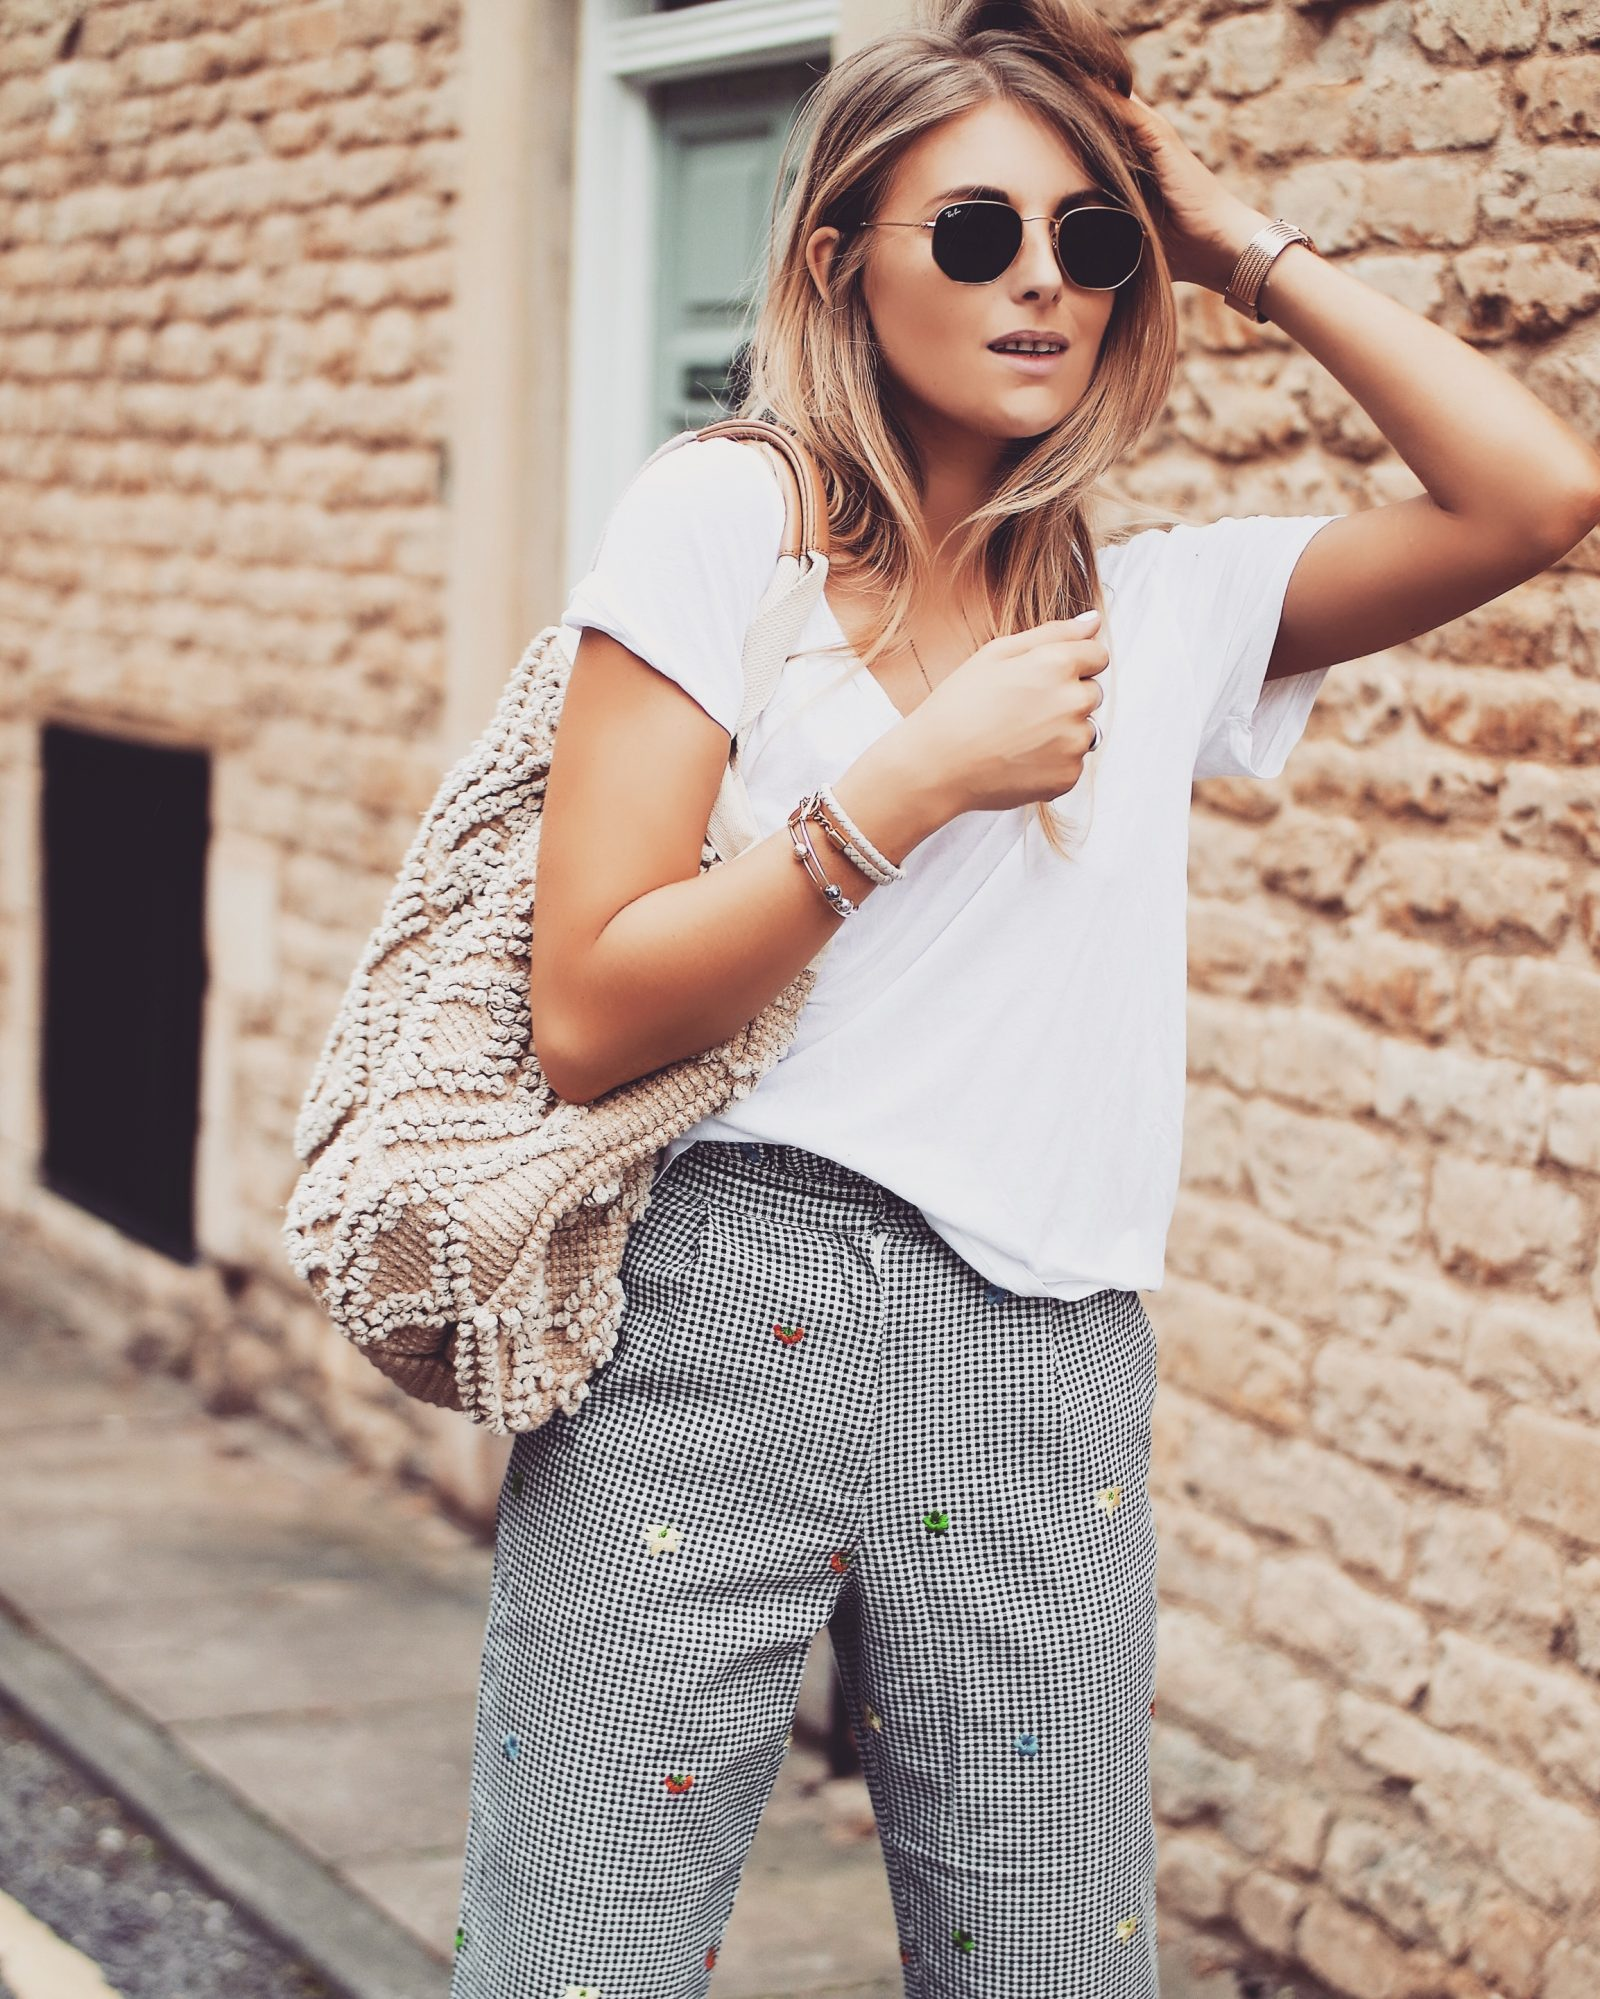 Topshop Gingham Trousers - Non Denim Bottoms - Fashion Blogger